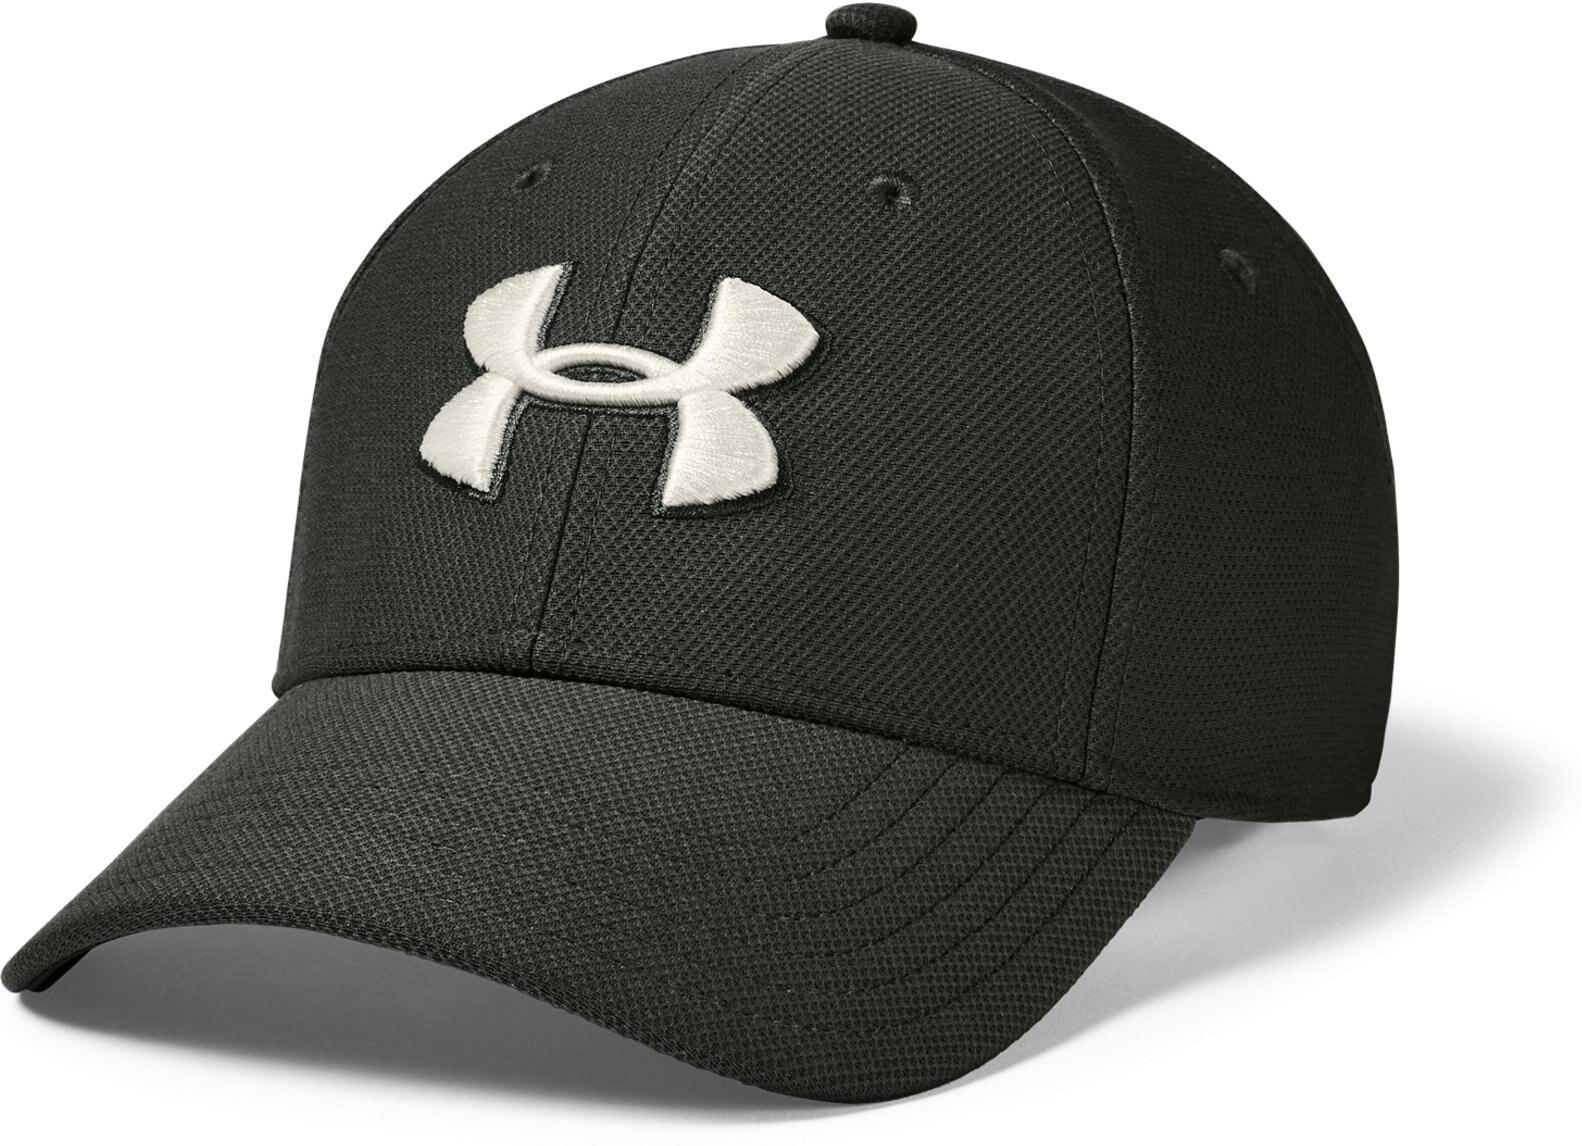 Šilterica Under Armour UA Men s Blitzing 3.0 Cap